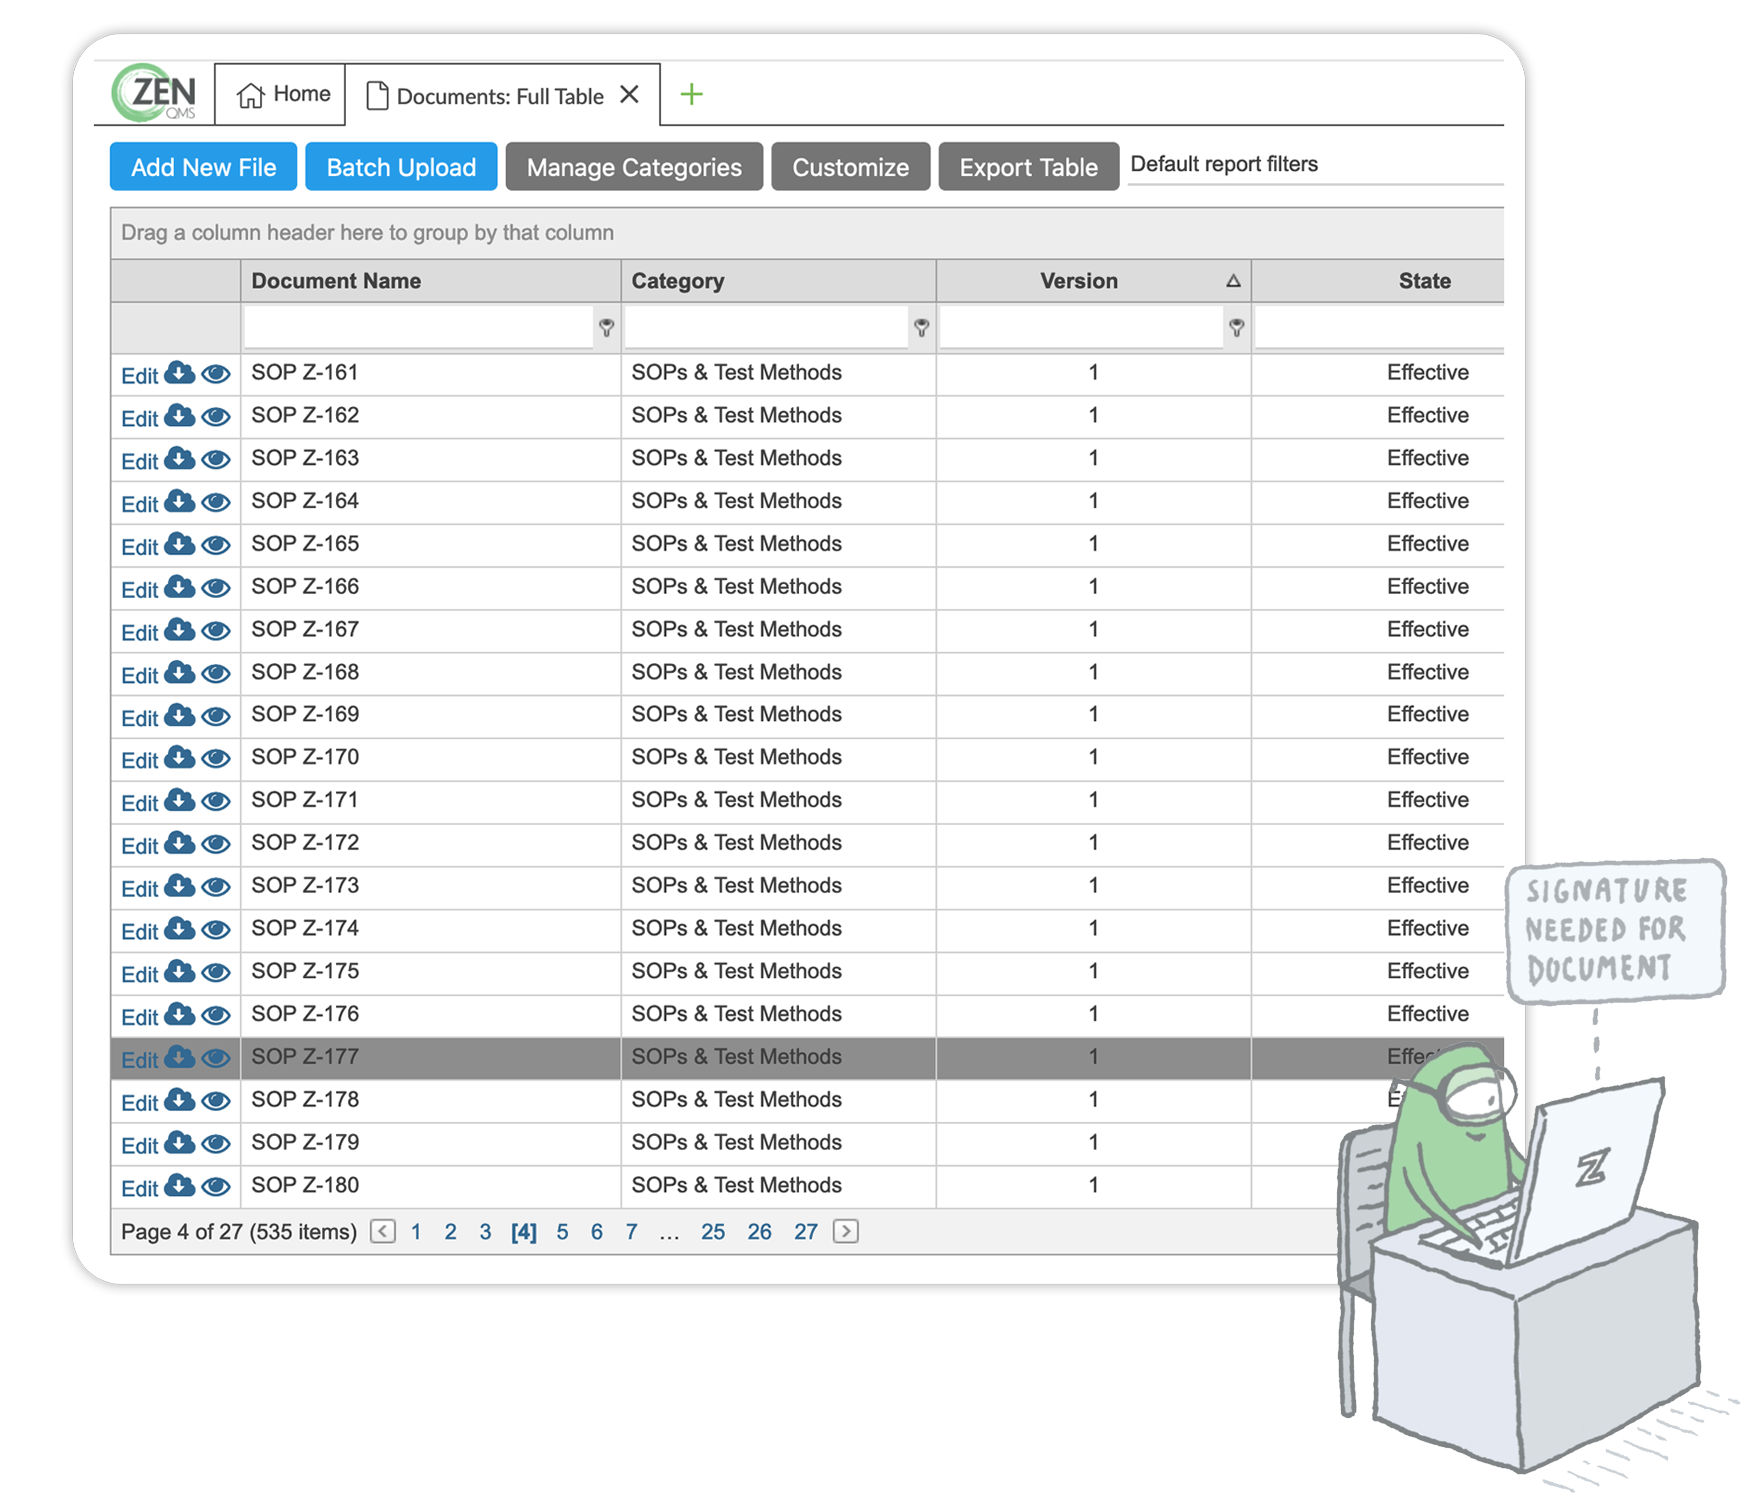 A screenshot of the Documents module and an illustration of a Zenner on their computer with a note that they have a document due for training to show how ZenQMS can automate the document management lifecycle.